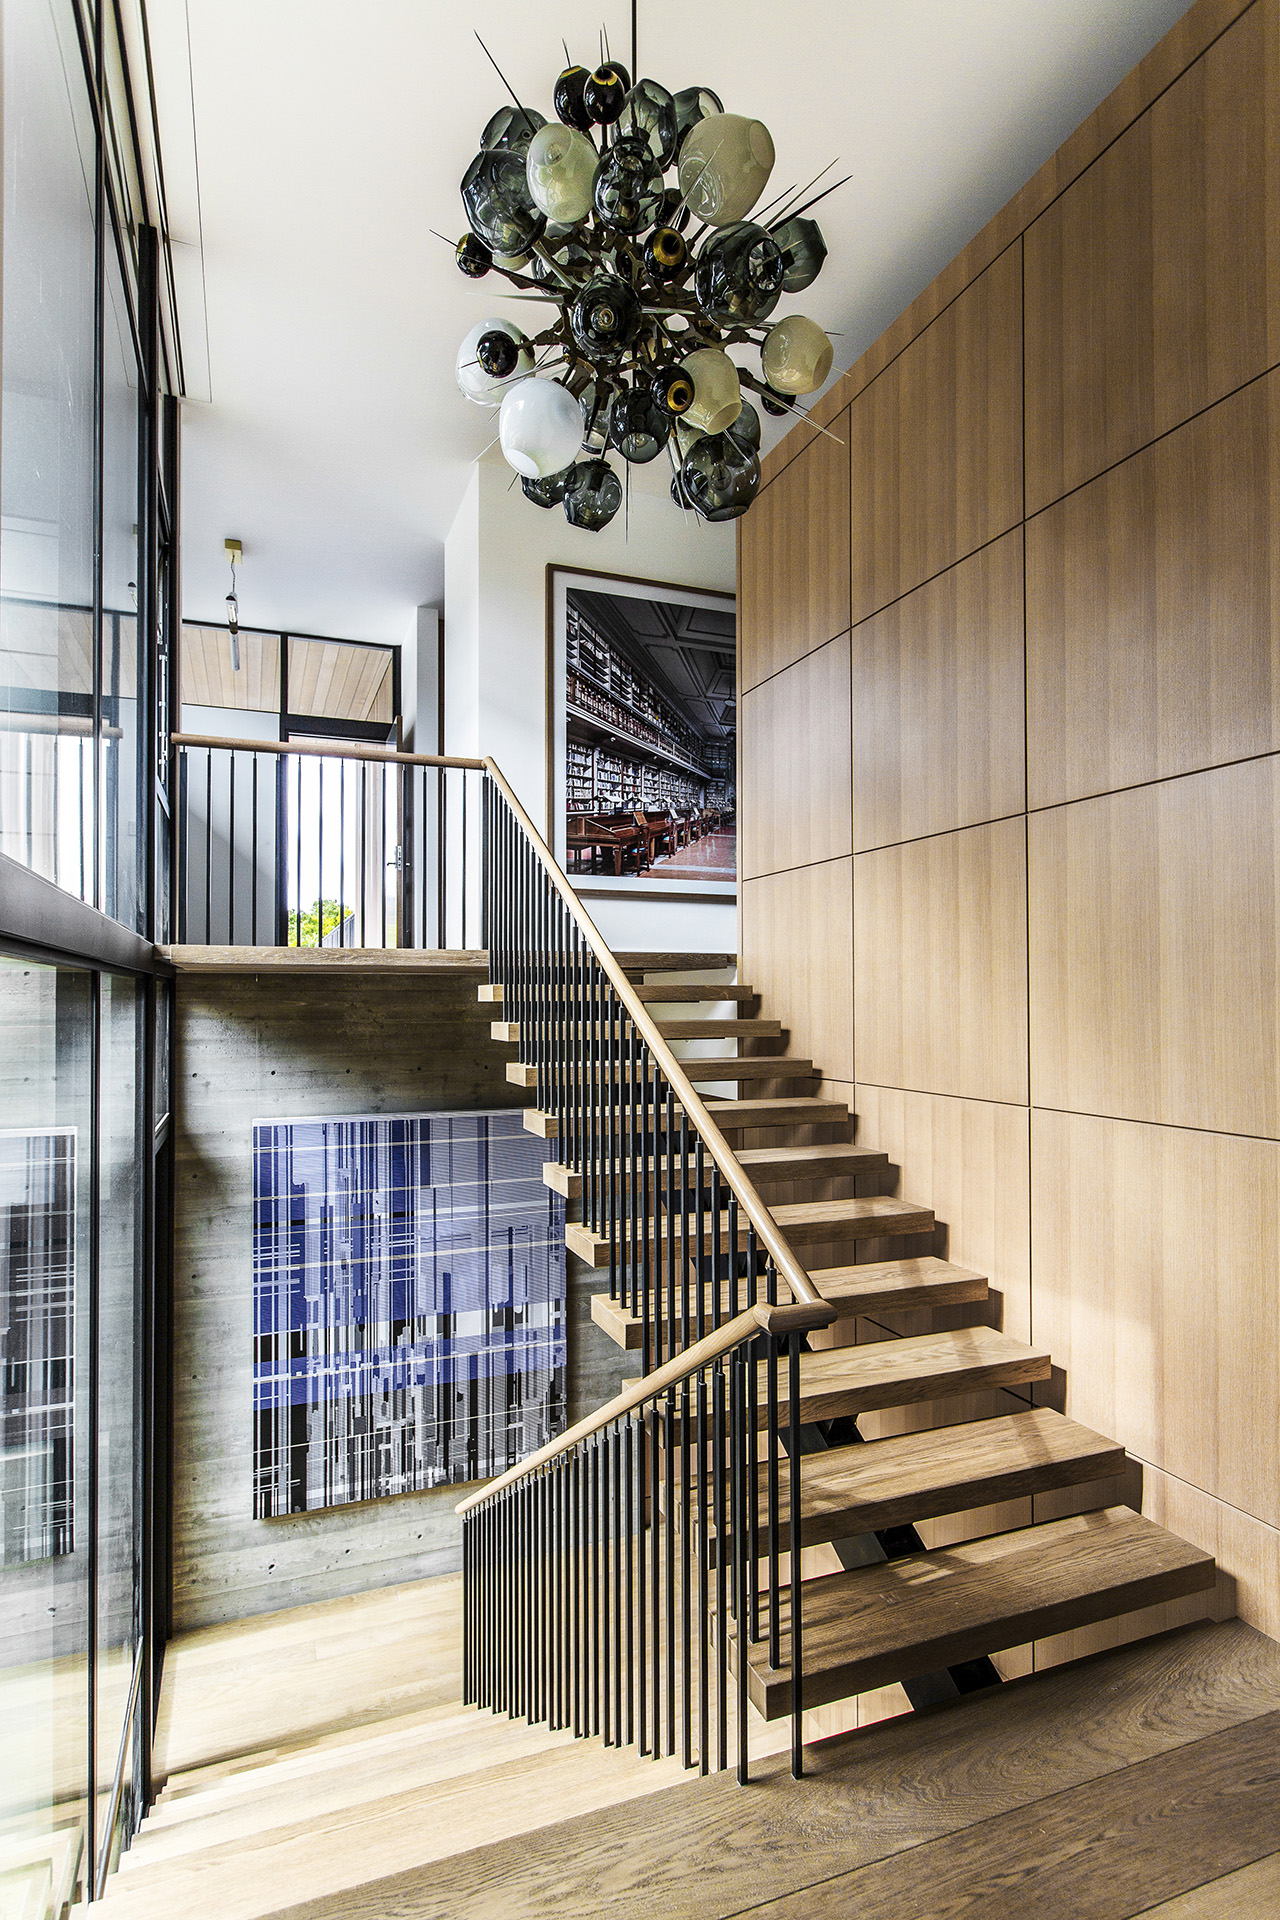 A Boom Boom Burst chandelier by Lindsey Adelman hangs above the staircase. A photograph by Candida Höfer and a painting by Liu Wei are displayed on the walls.